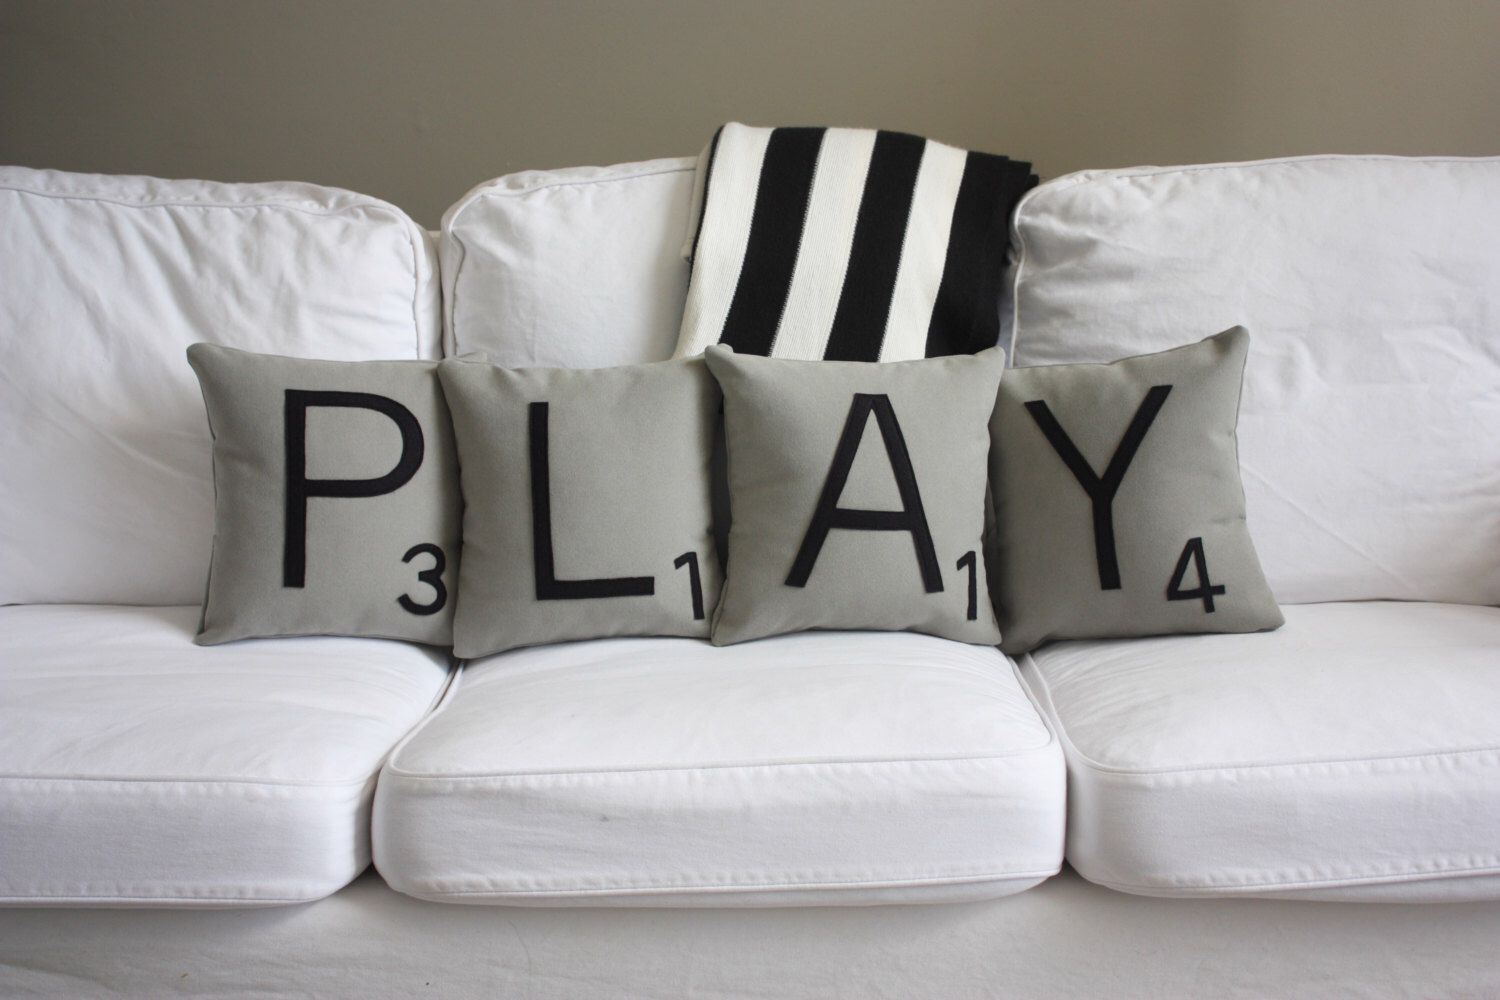 play scrabble pillows inserts included scrabble tile pillows giant scrabble tiles